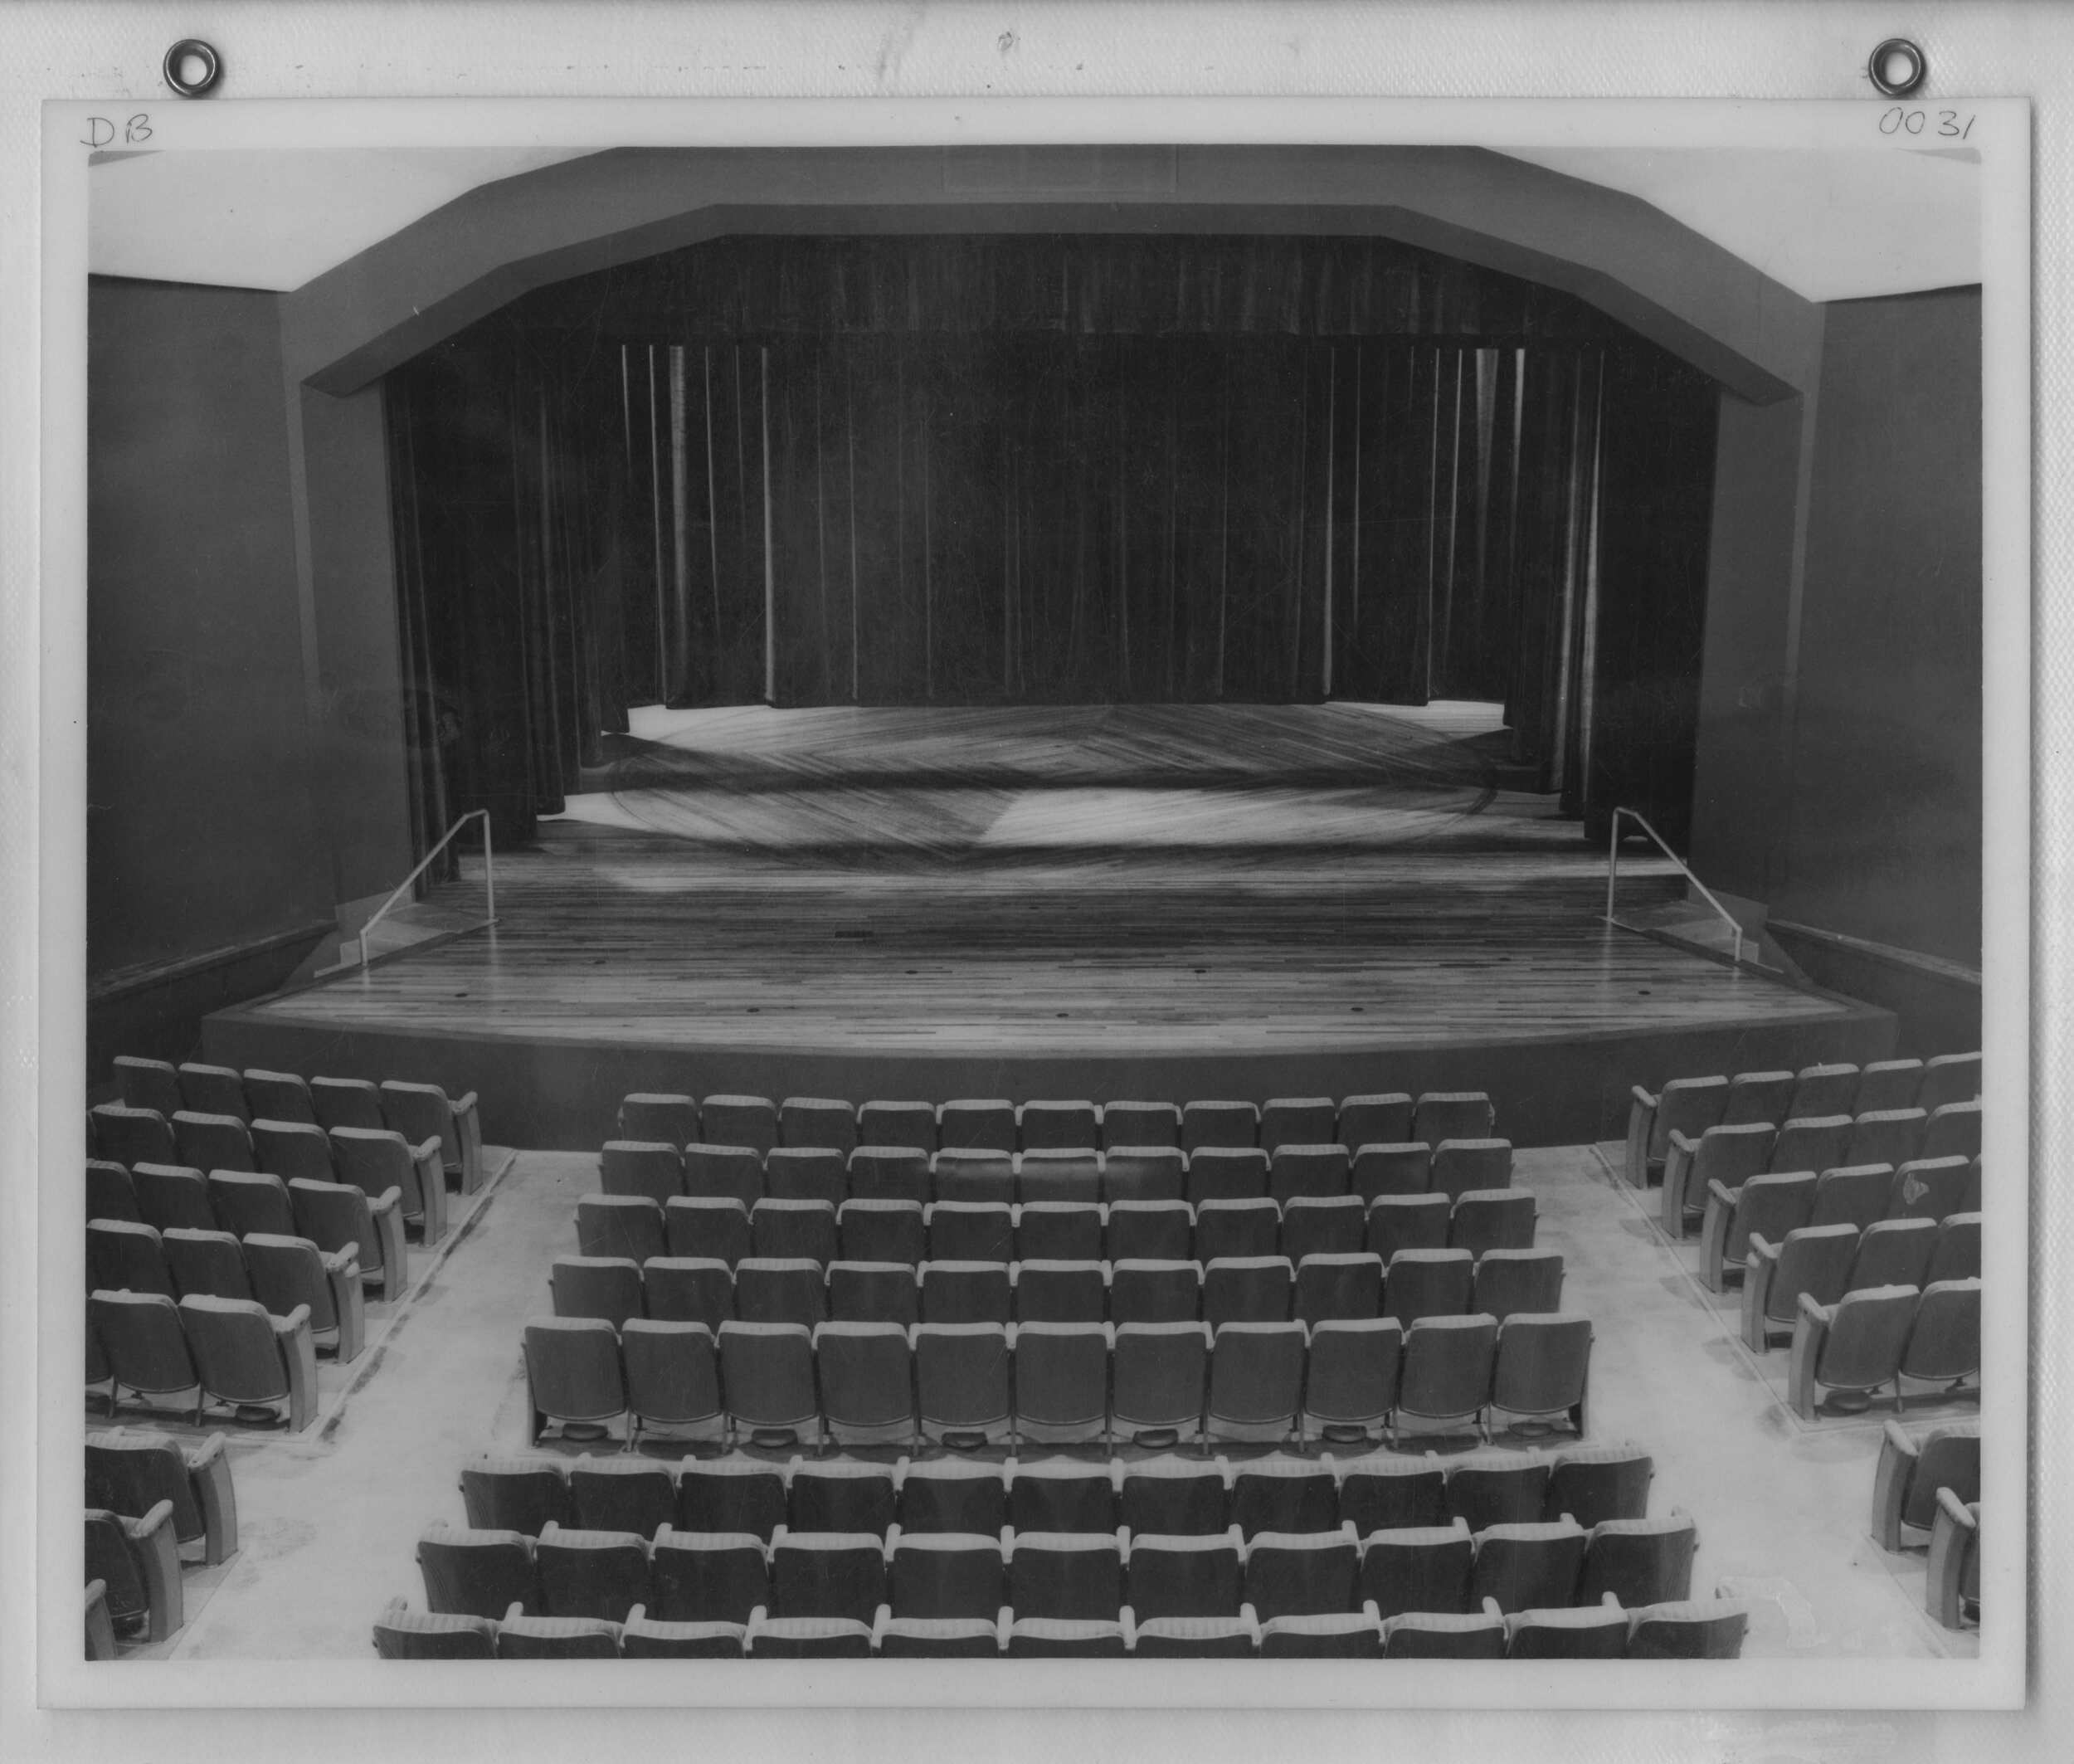 Helen Langworthy Theatre - The space began life as the Frasier Hall Auditorium in 1954, but was renamed in 1985 in honor of Ms. Langworthy for her many contributions to the Theatre Department and the Little Theatre of the Rockies. Langworthy Theatre remains a vital performance space for the University of Northern Colorado's School of Theatre Arts and Dance. (Image use courtesy of Special Collections, Michener Library, University of Northern Colorado.)